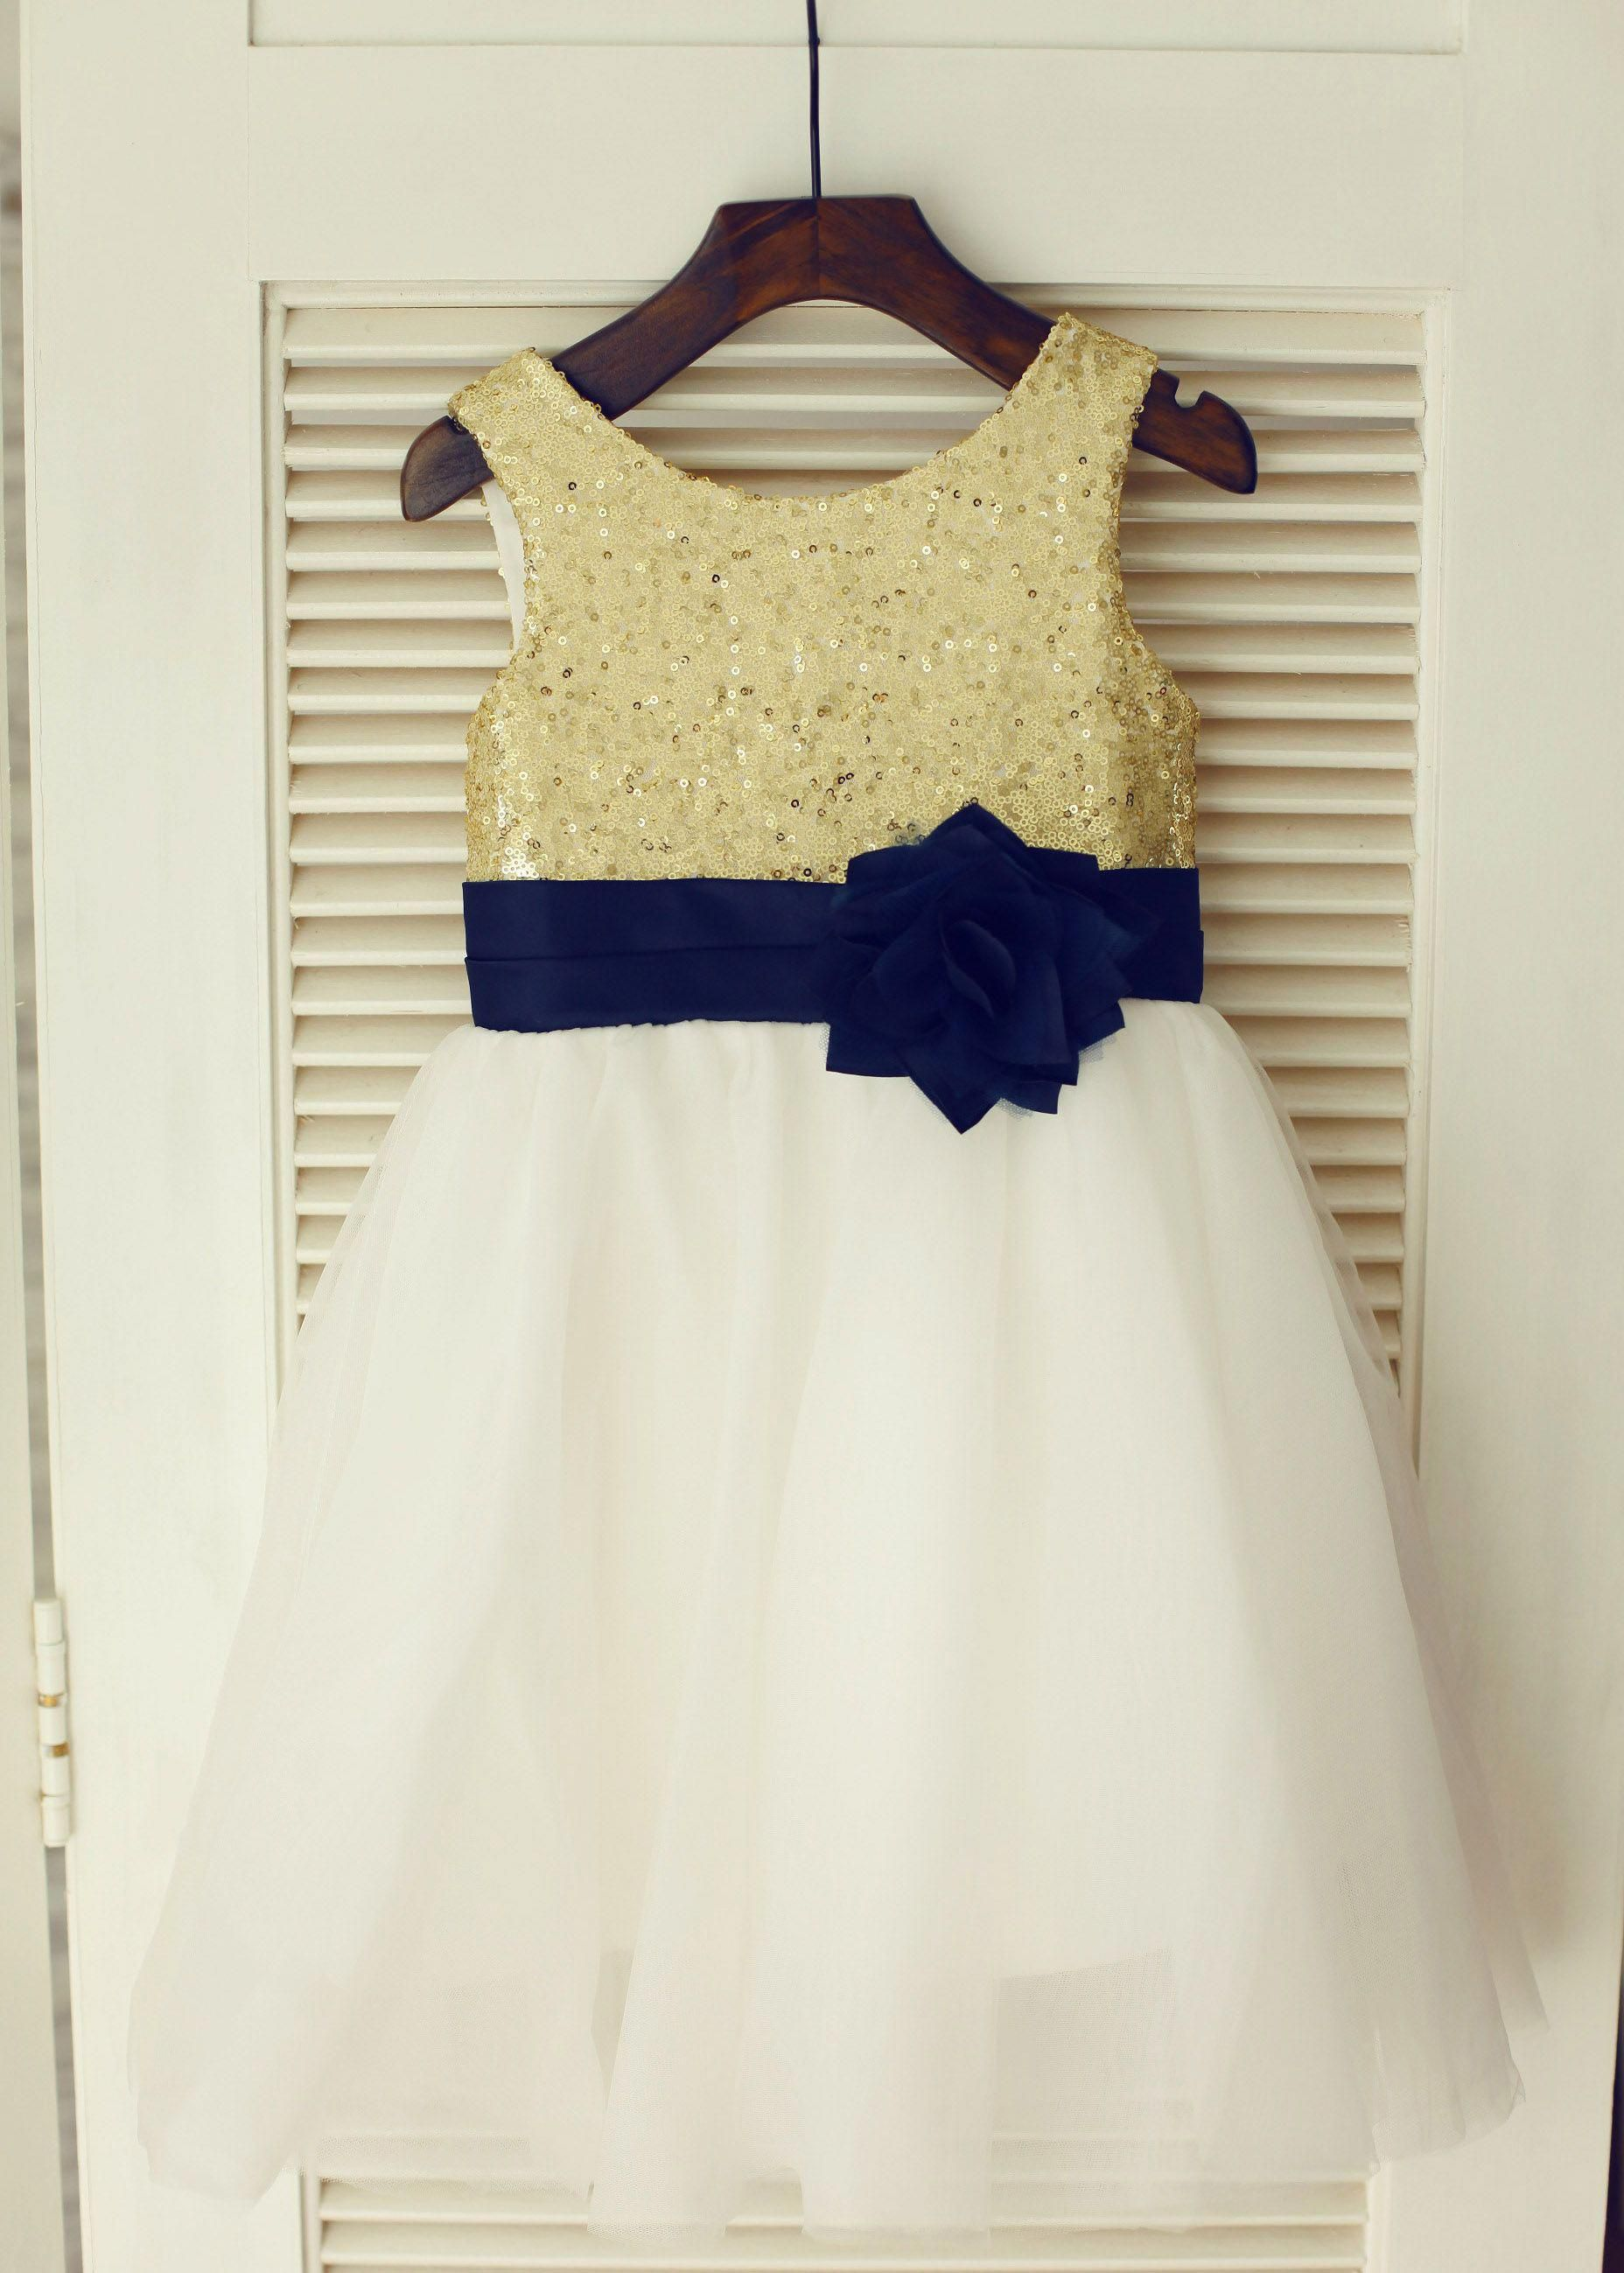 a3f6b1e9297 The materials for this dress is sequin